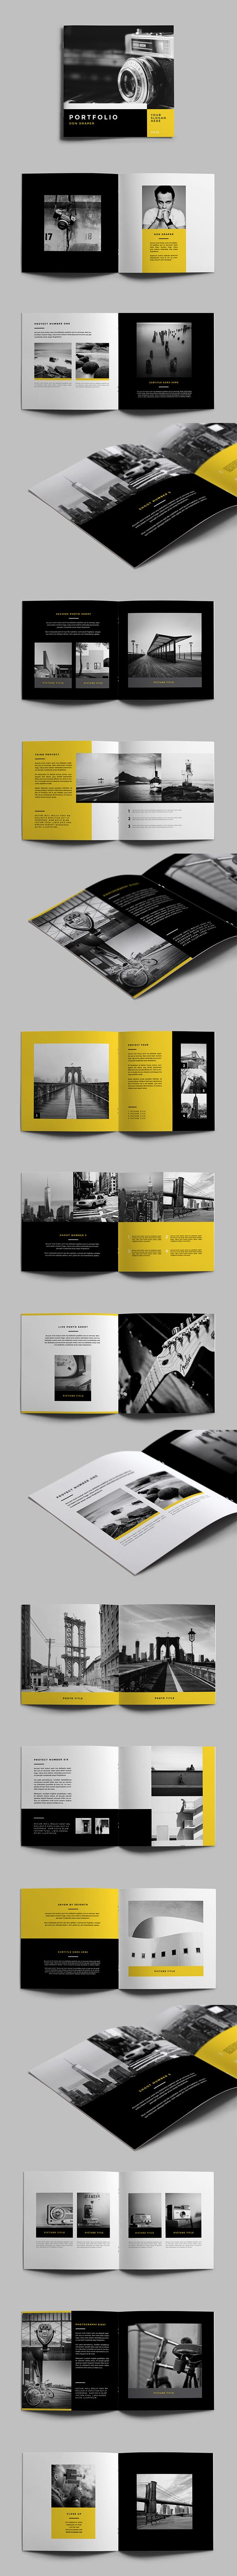 Simple Minimal Portfolio. Download here: http://graphicriver.net/item/simple-minimal-portfolio/11455547?ref=abradesign #portfolio #brochure #design